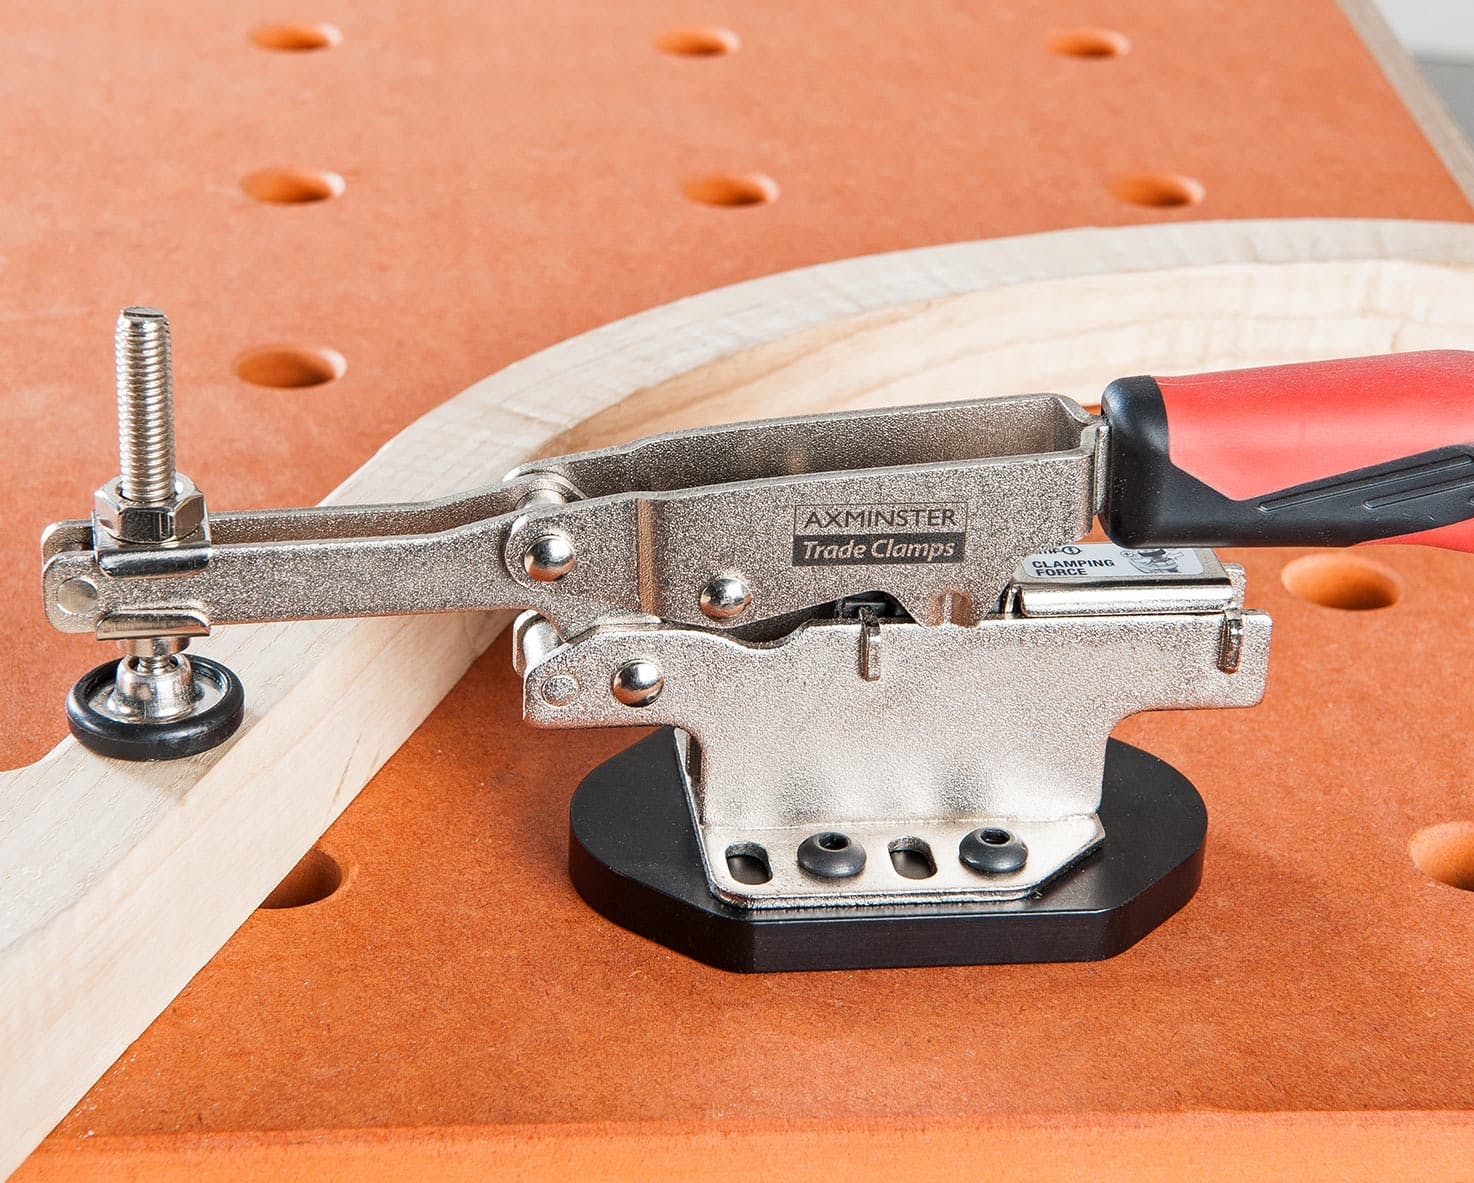 Introducing Toggle Clamps